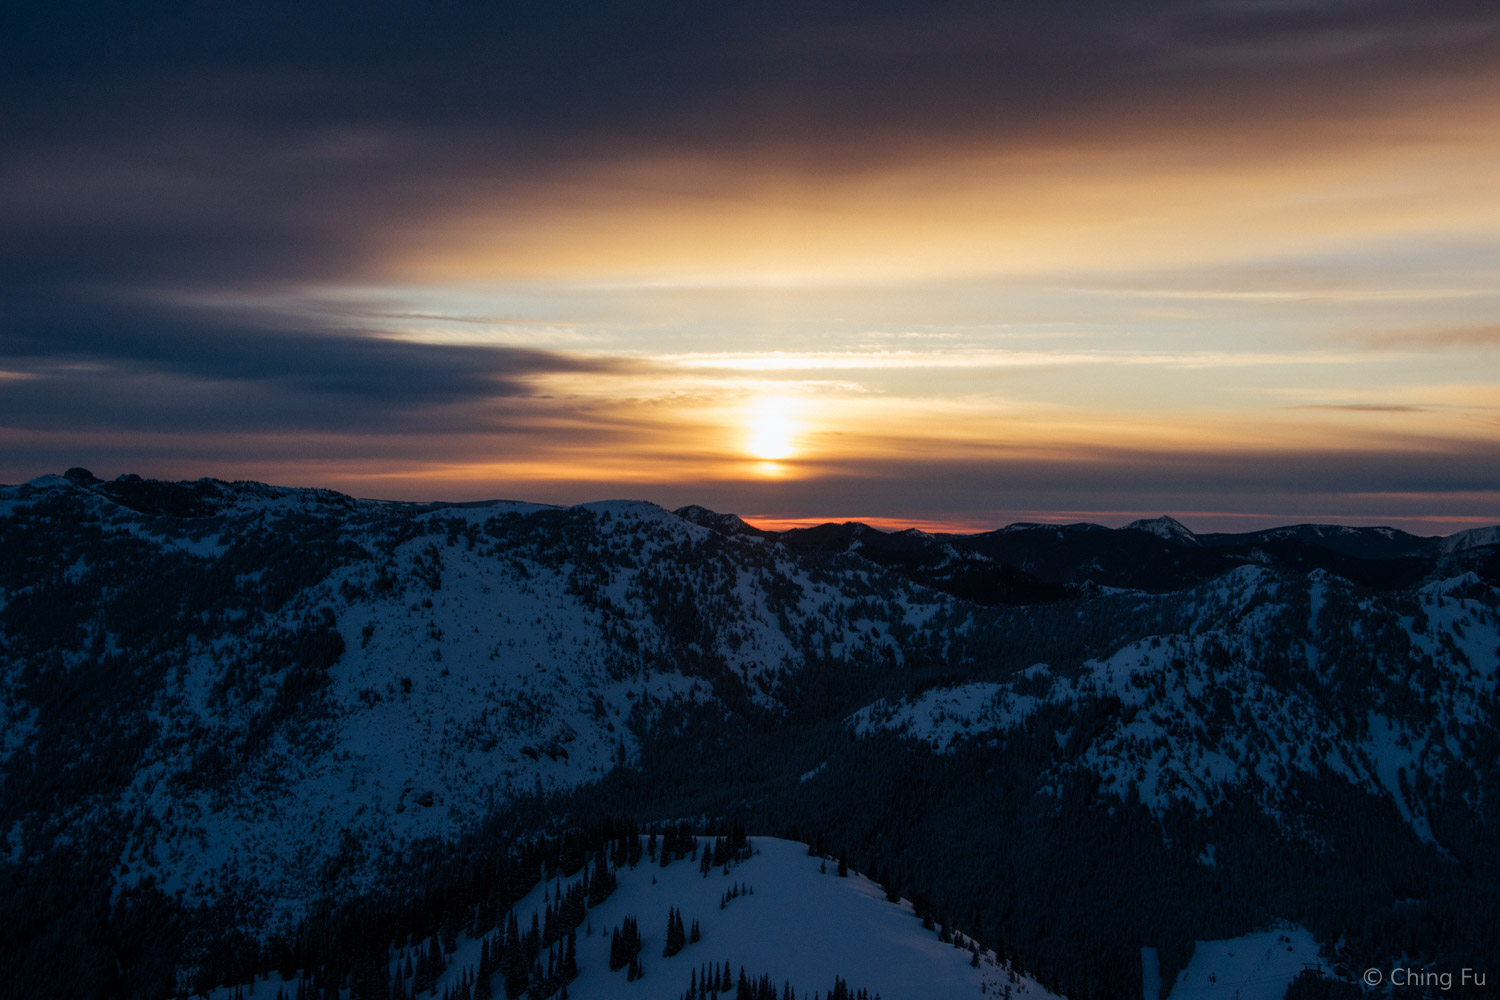 Sun rising from the top of the gondola.